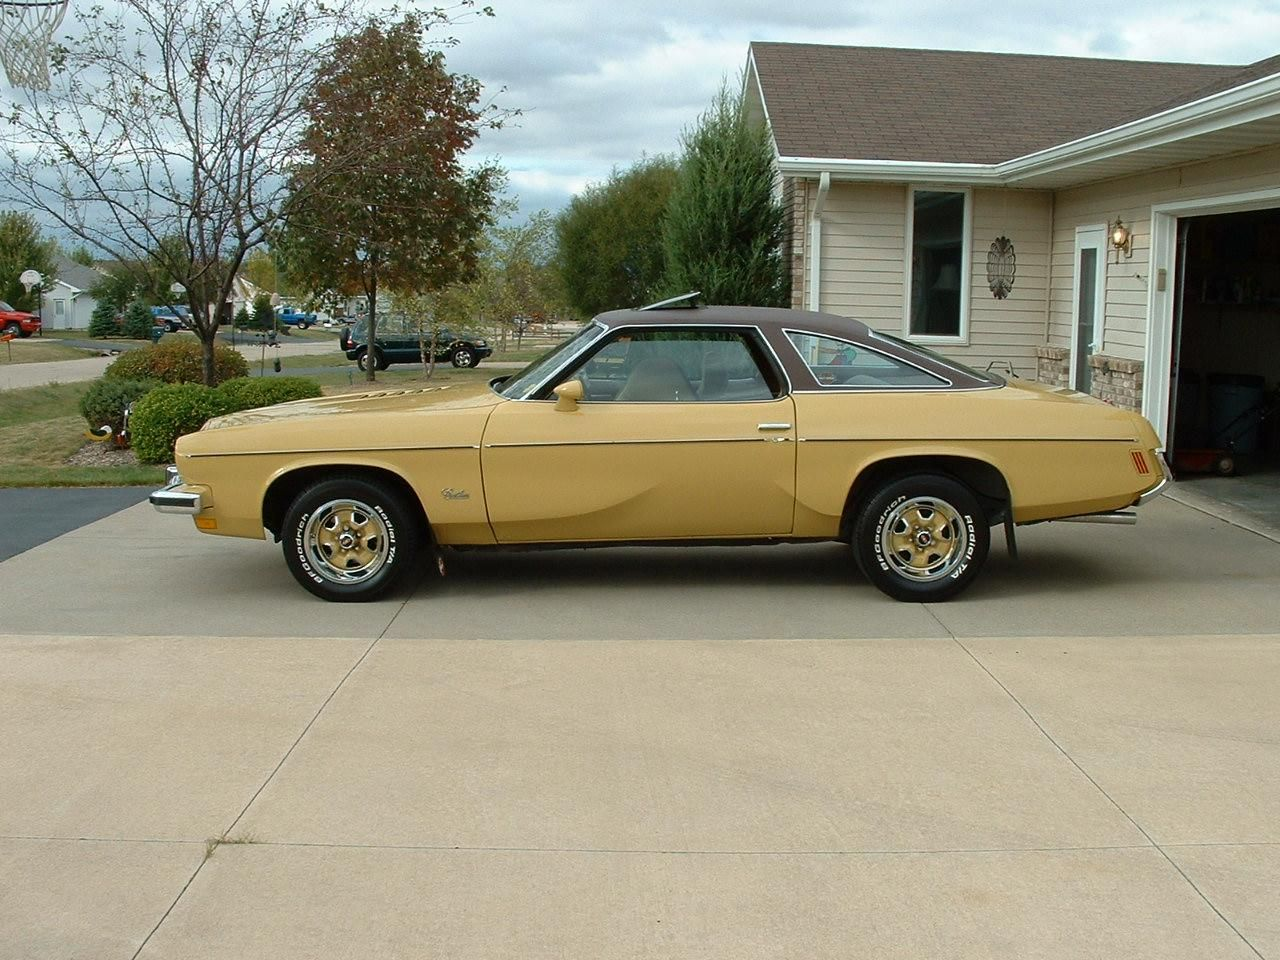 1975 oldsmobile cutlass salon 73rocketship 1973 for 1975 oldsmobile cutlass salon for sale